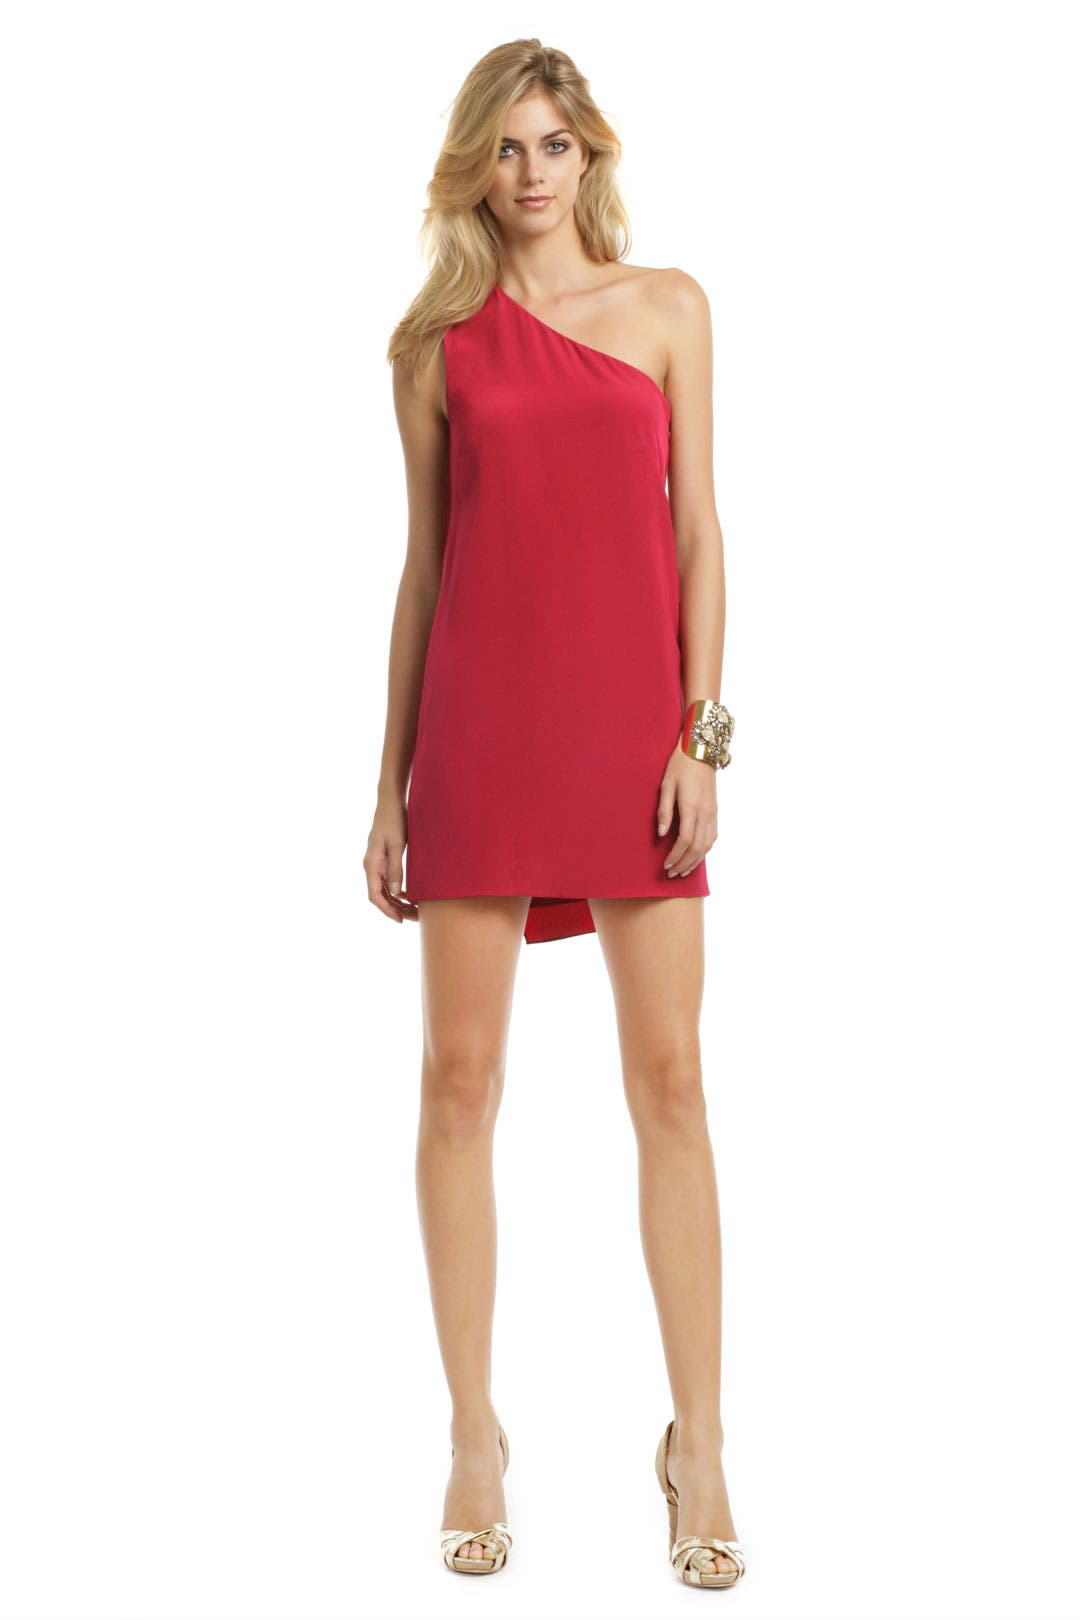 Psychedelic Red Dress by Tibi